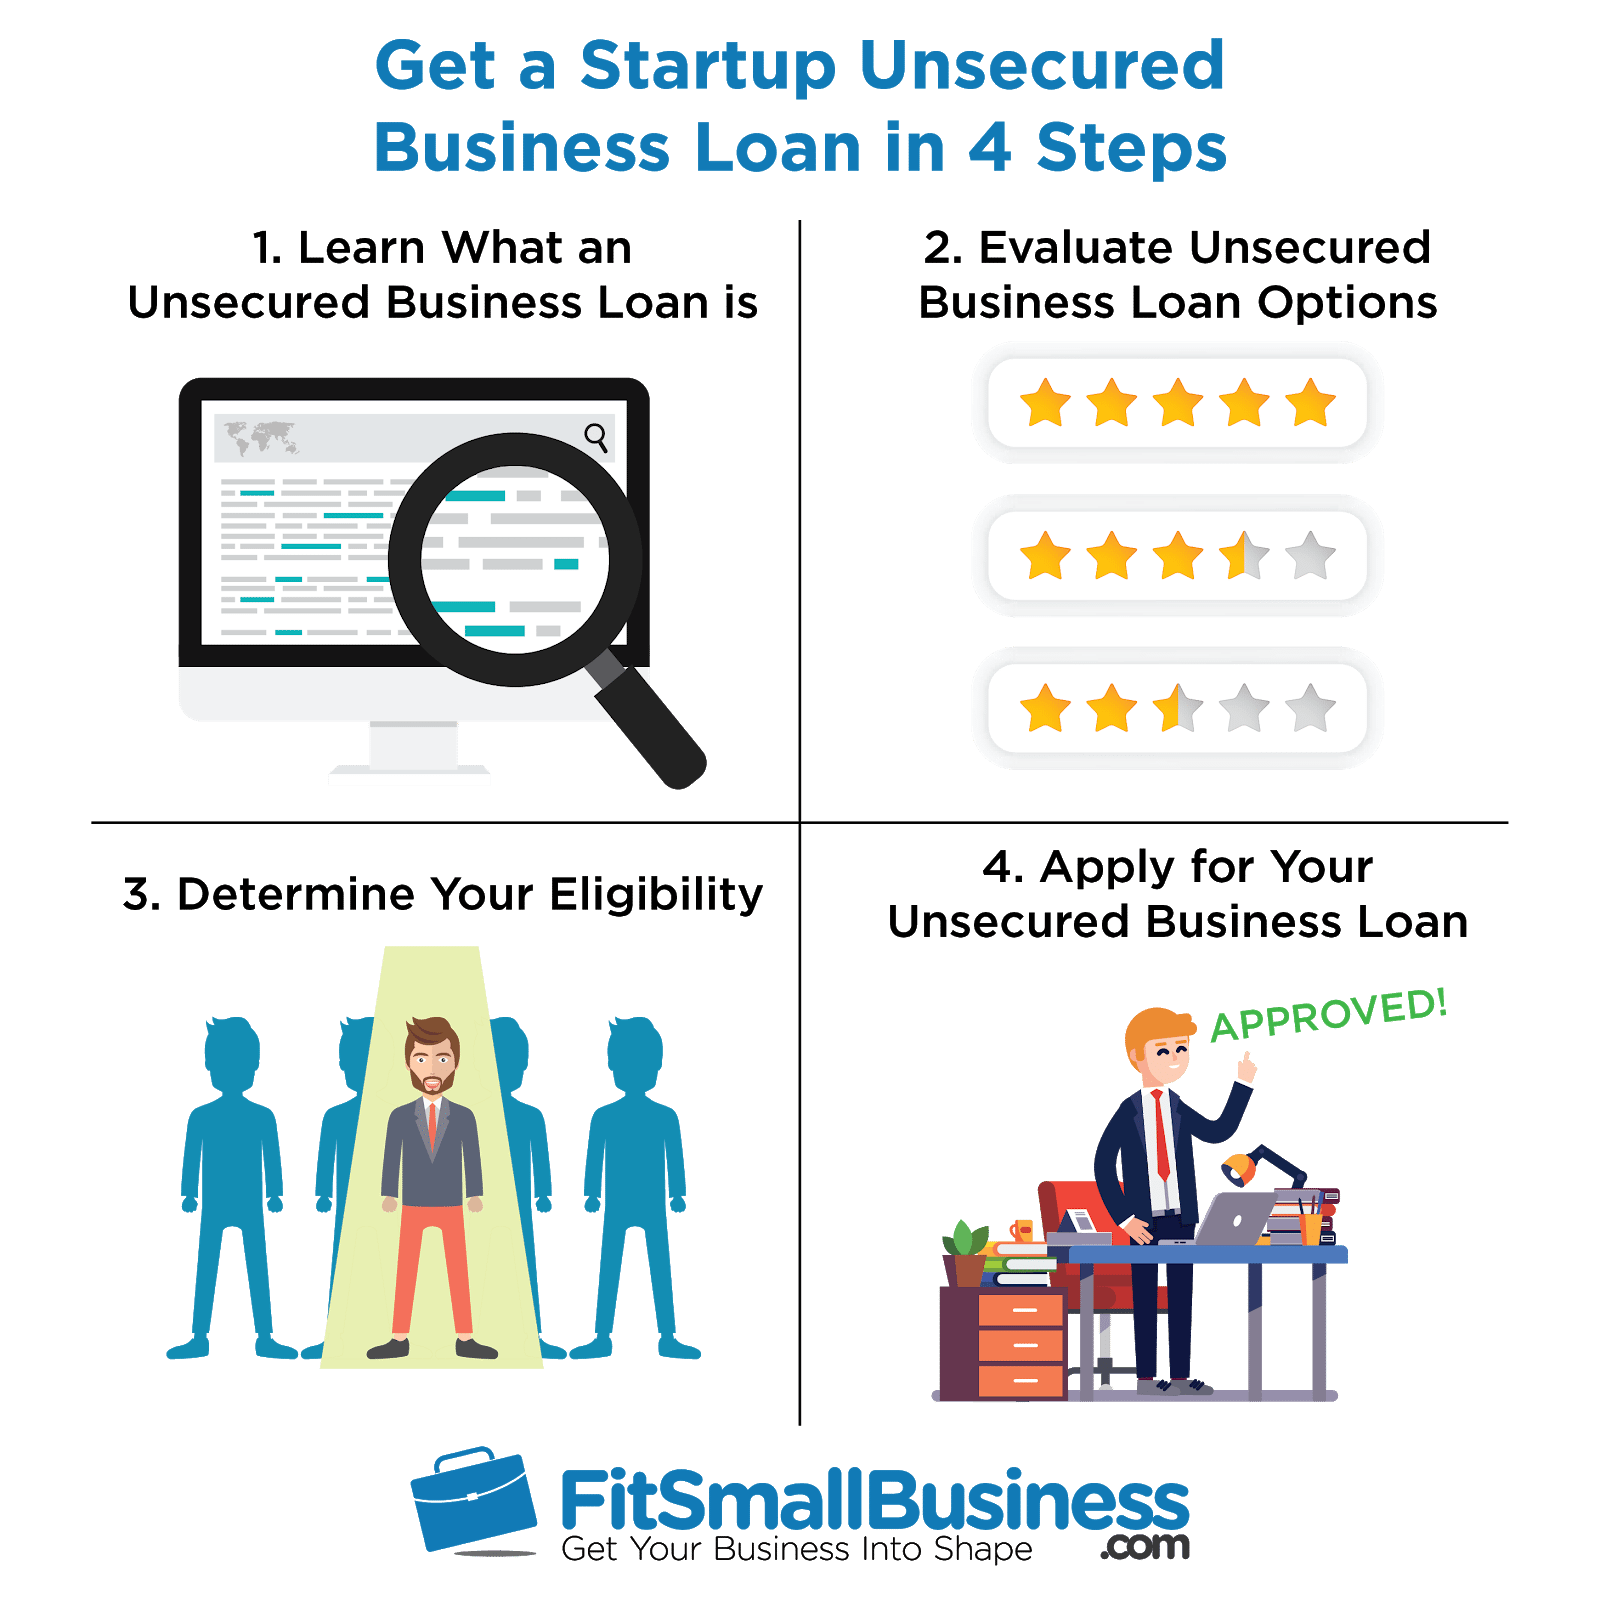 infographic on how to get a startup unsecured business loan in 4 steps